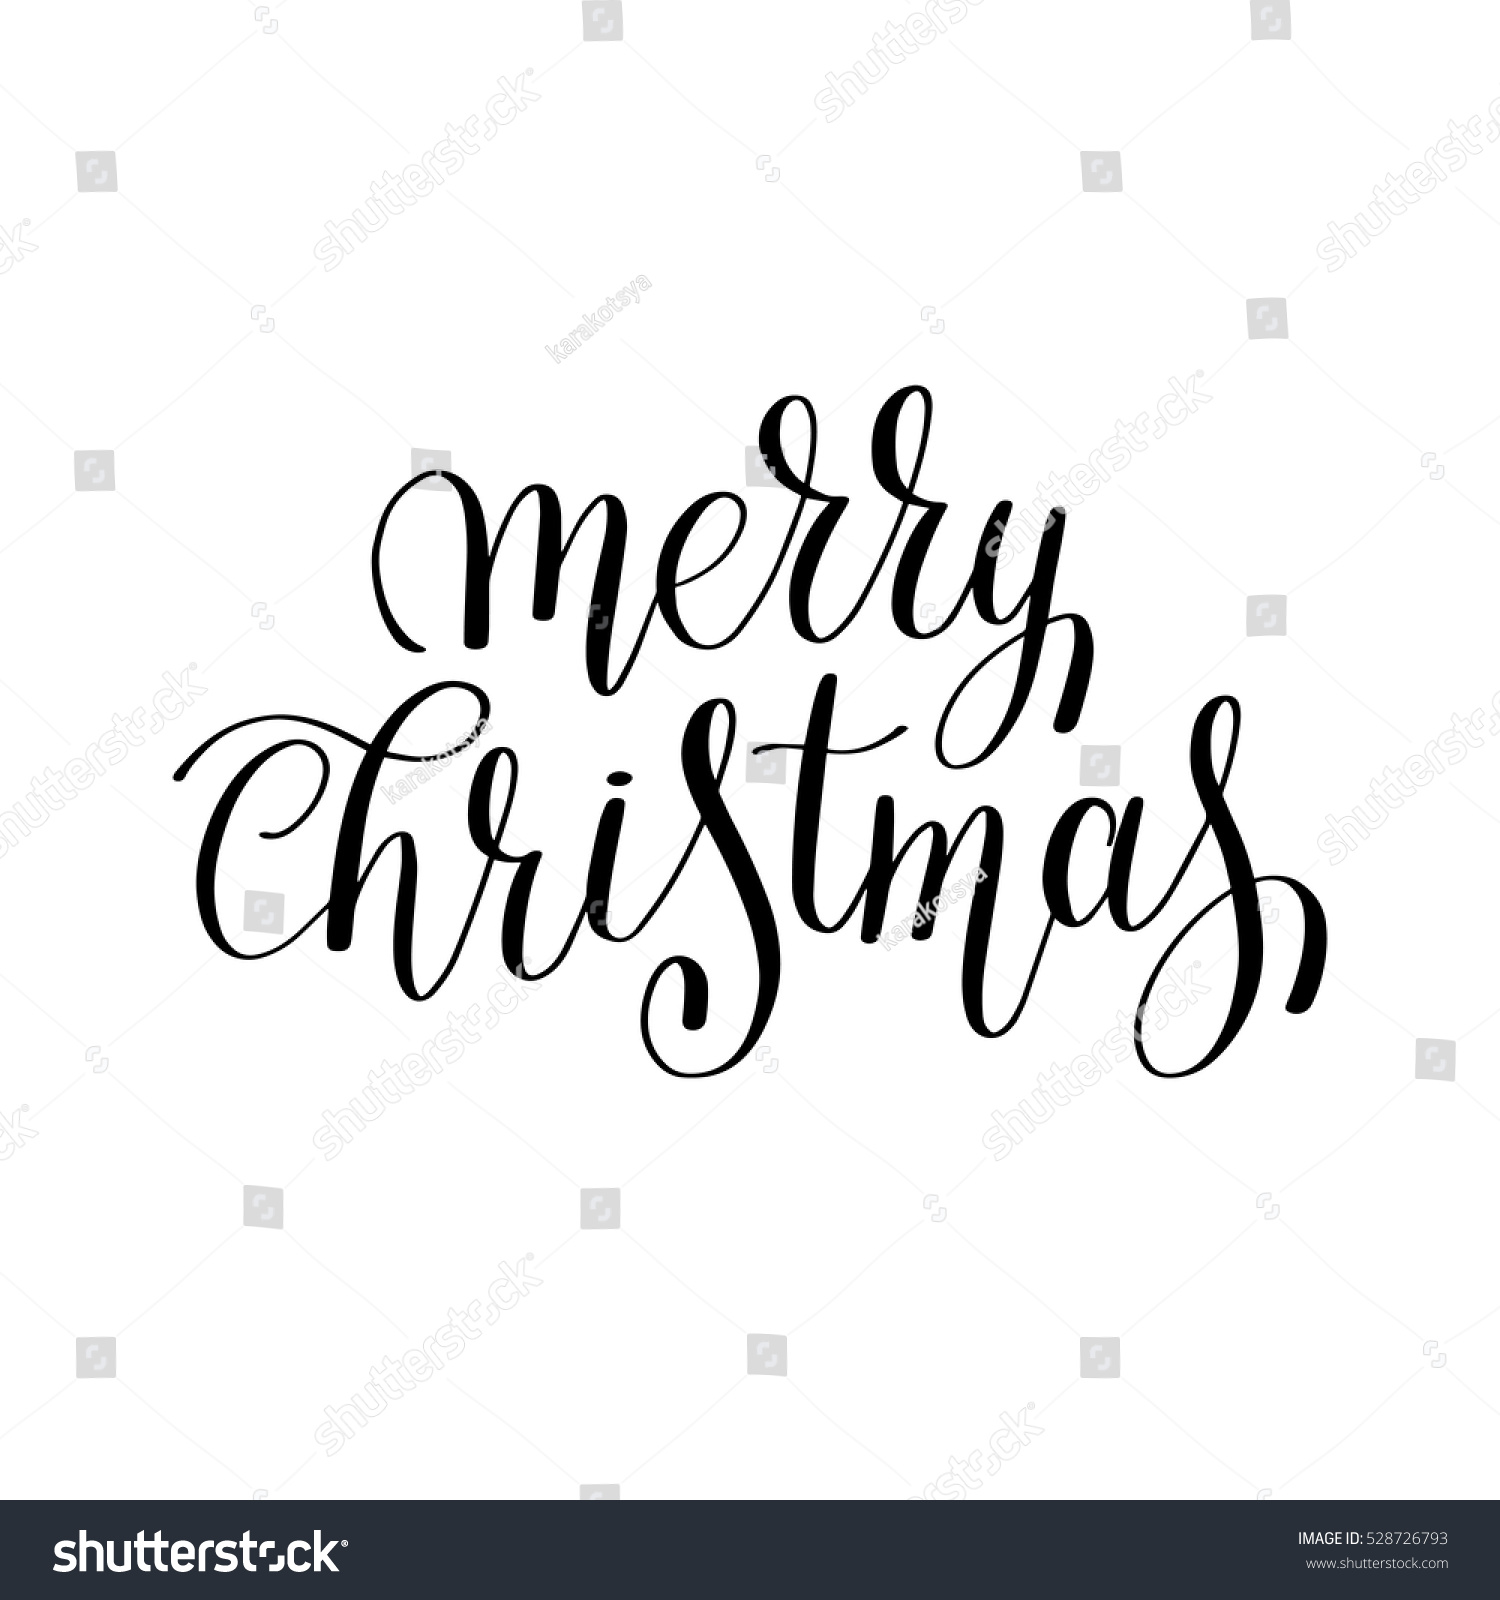 merry christmas black and white handwritten lettering inscription holiday  phrase, typography banner with brush script